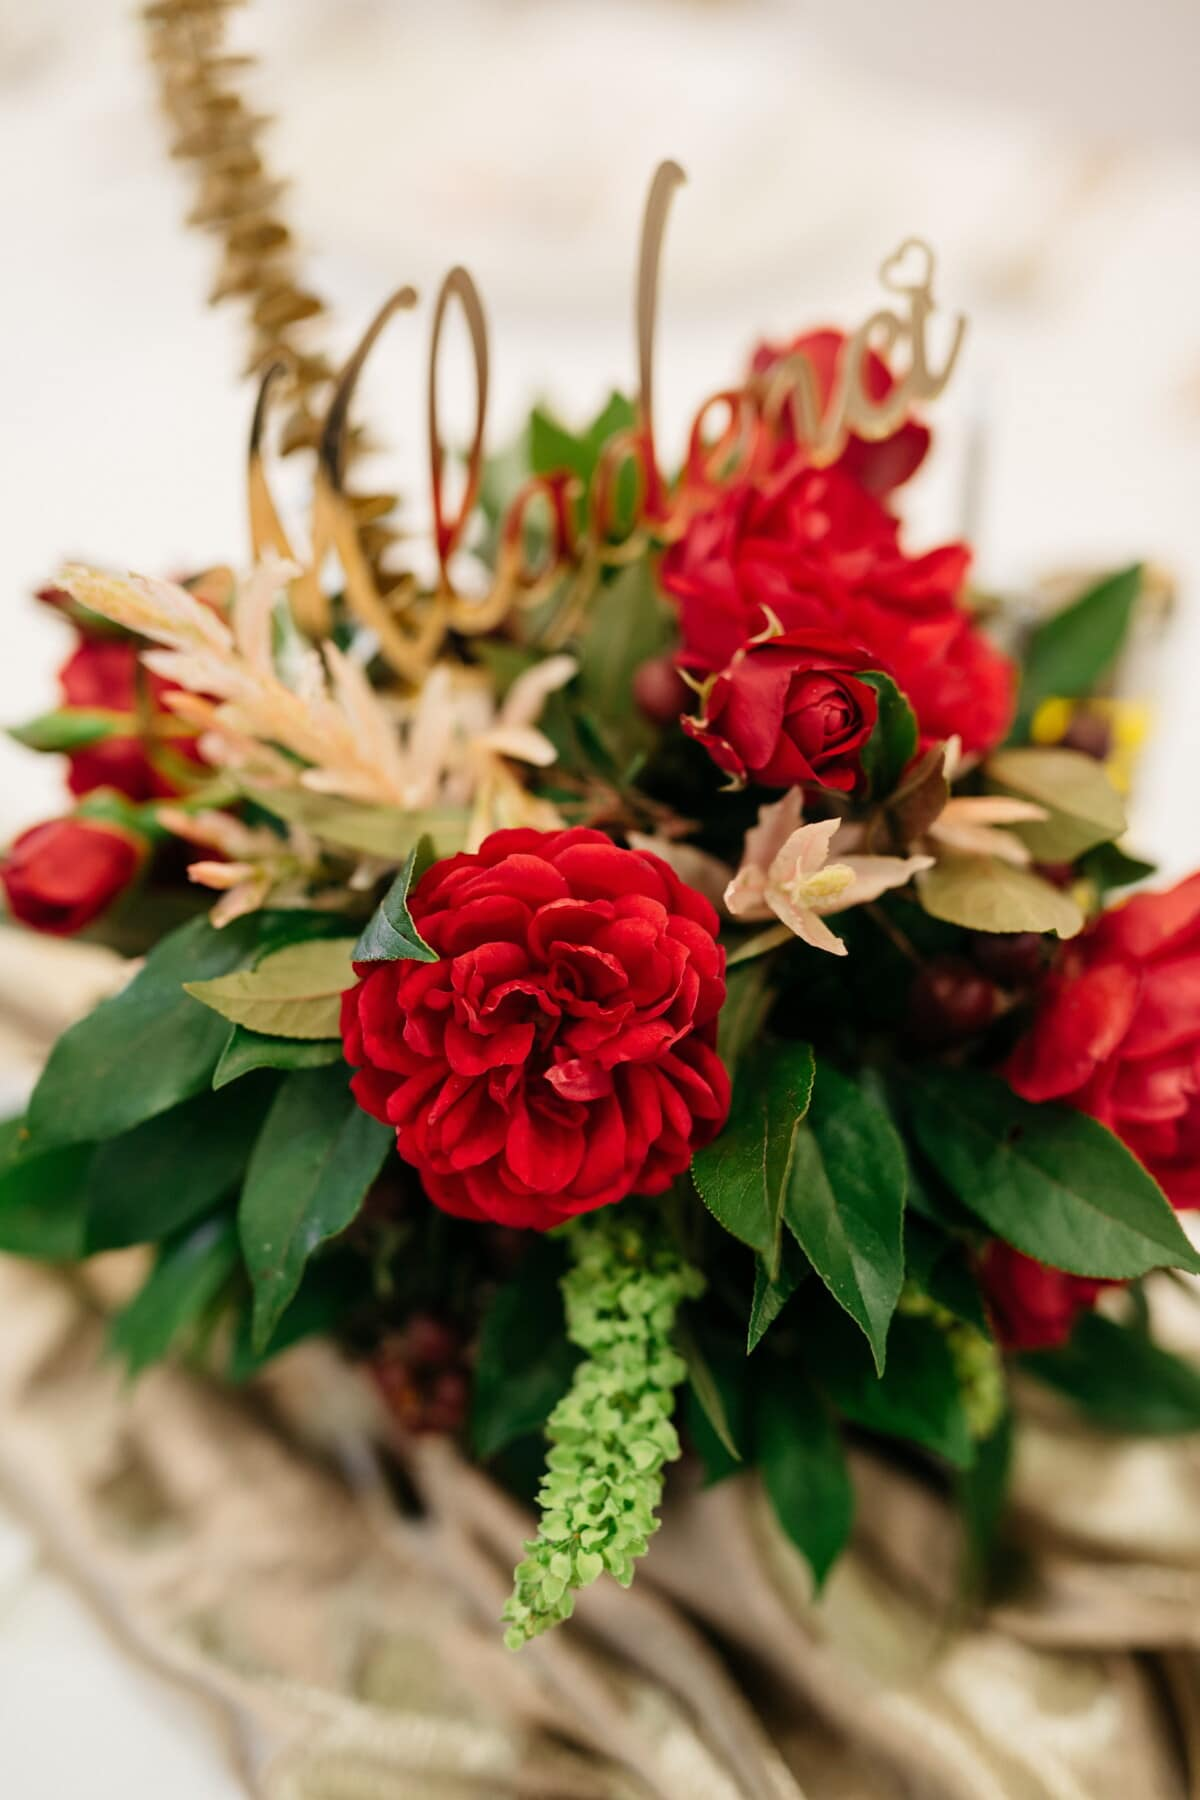 gift, bouquet, love, roses, red, romantic, anniversary, flower, decoration, arrangement